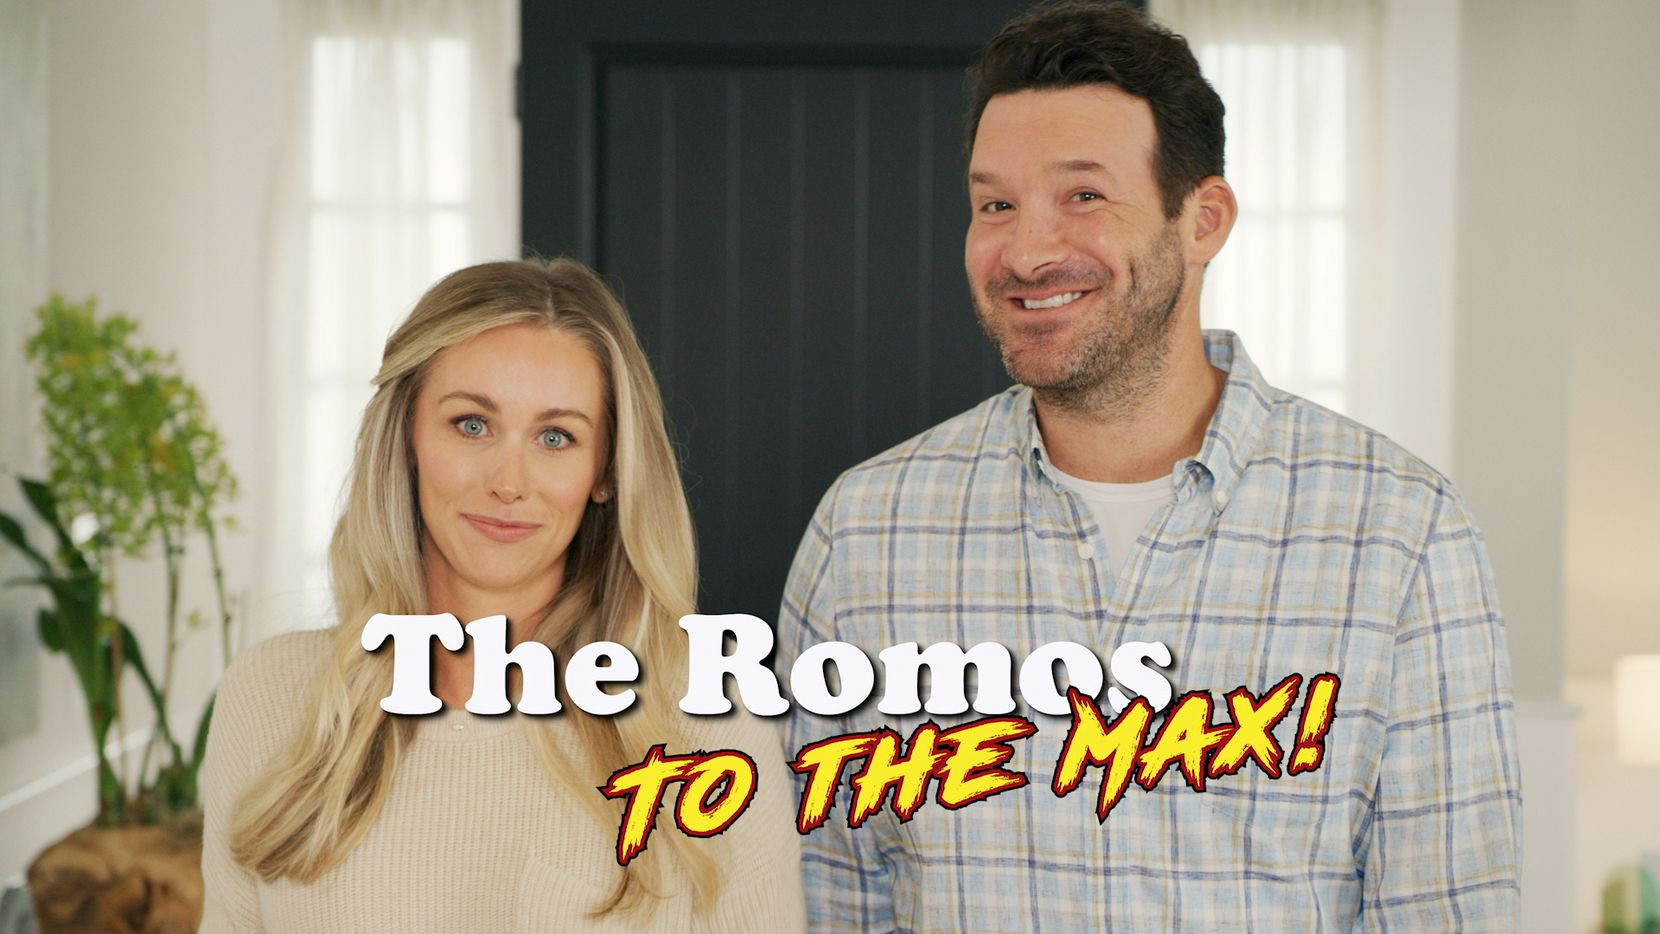 Tony Romo and his wife, Candice Crawford, starring in Skechers' Super Bowl LV advertisement.